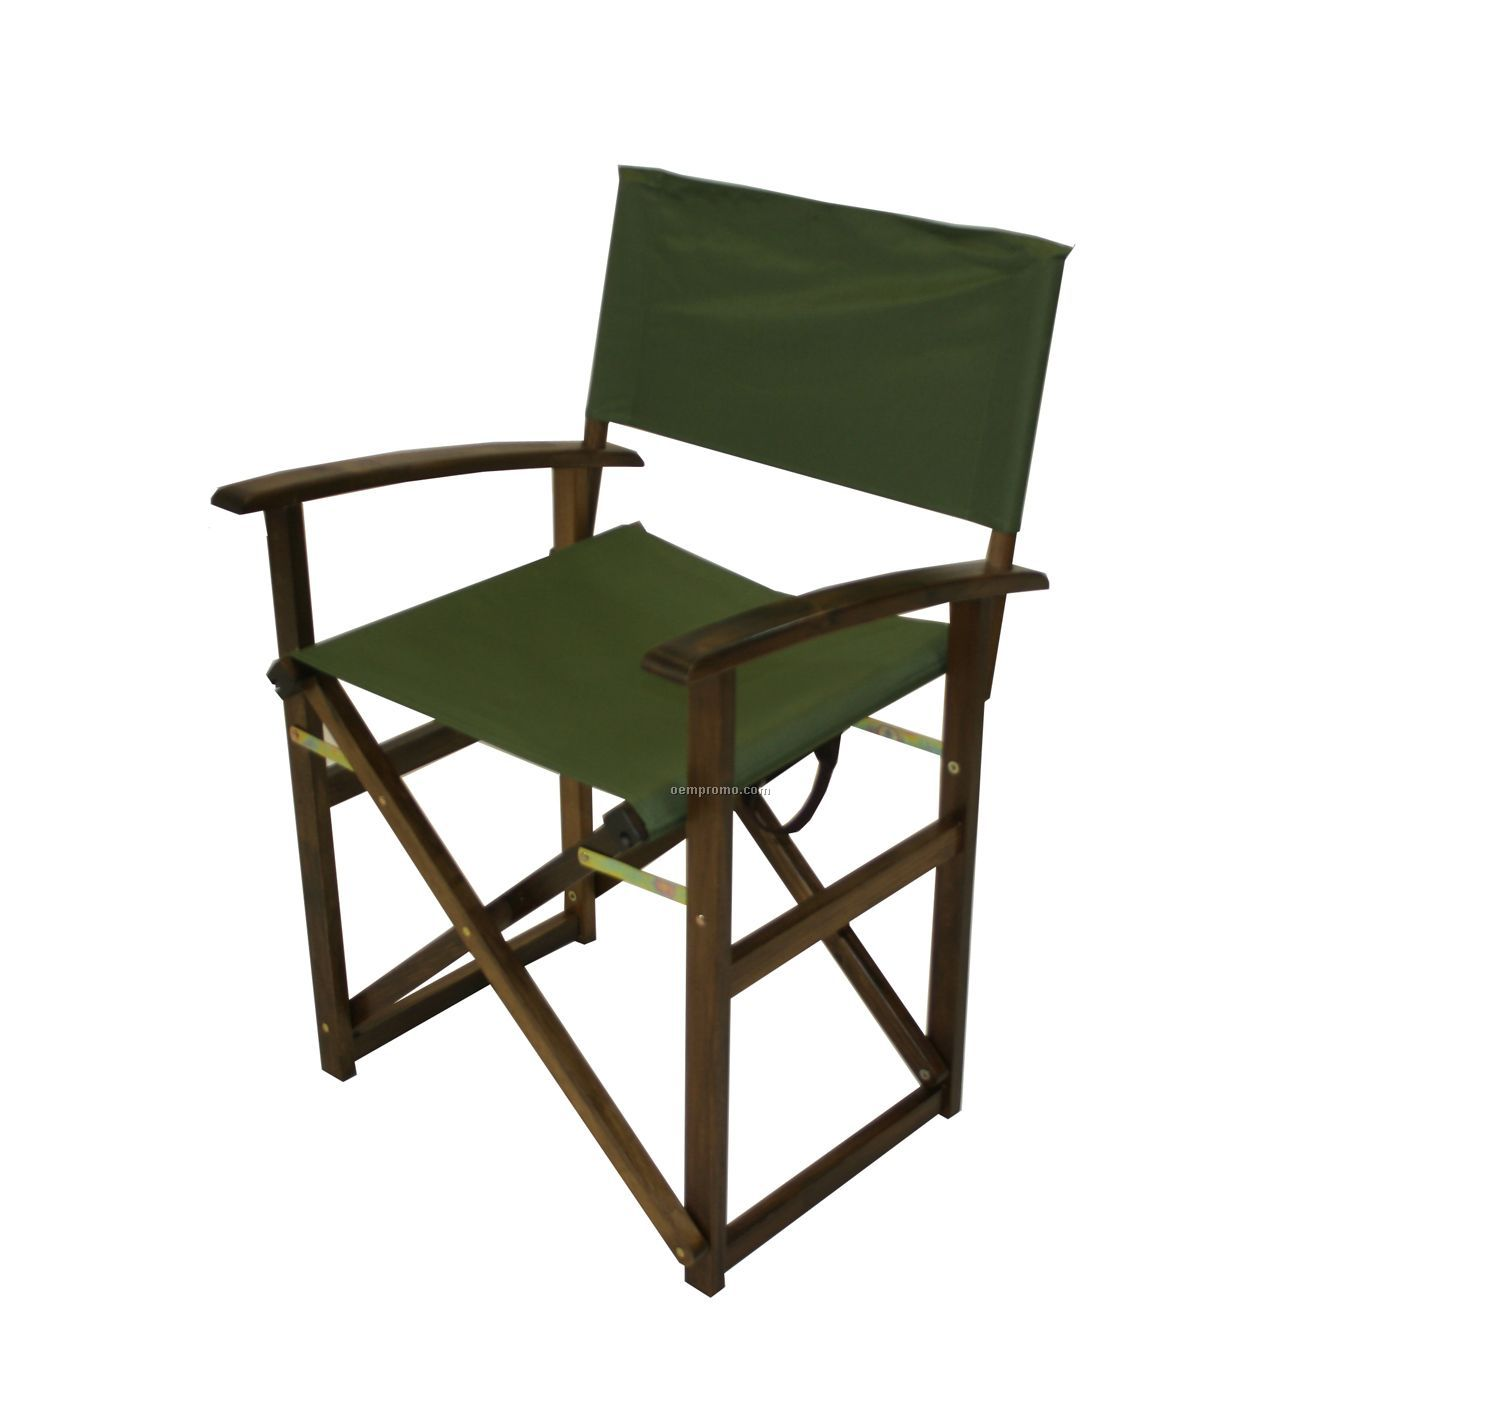 Wooden Directors Chairs directors chair wooden - wooden chairs